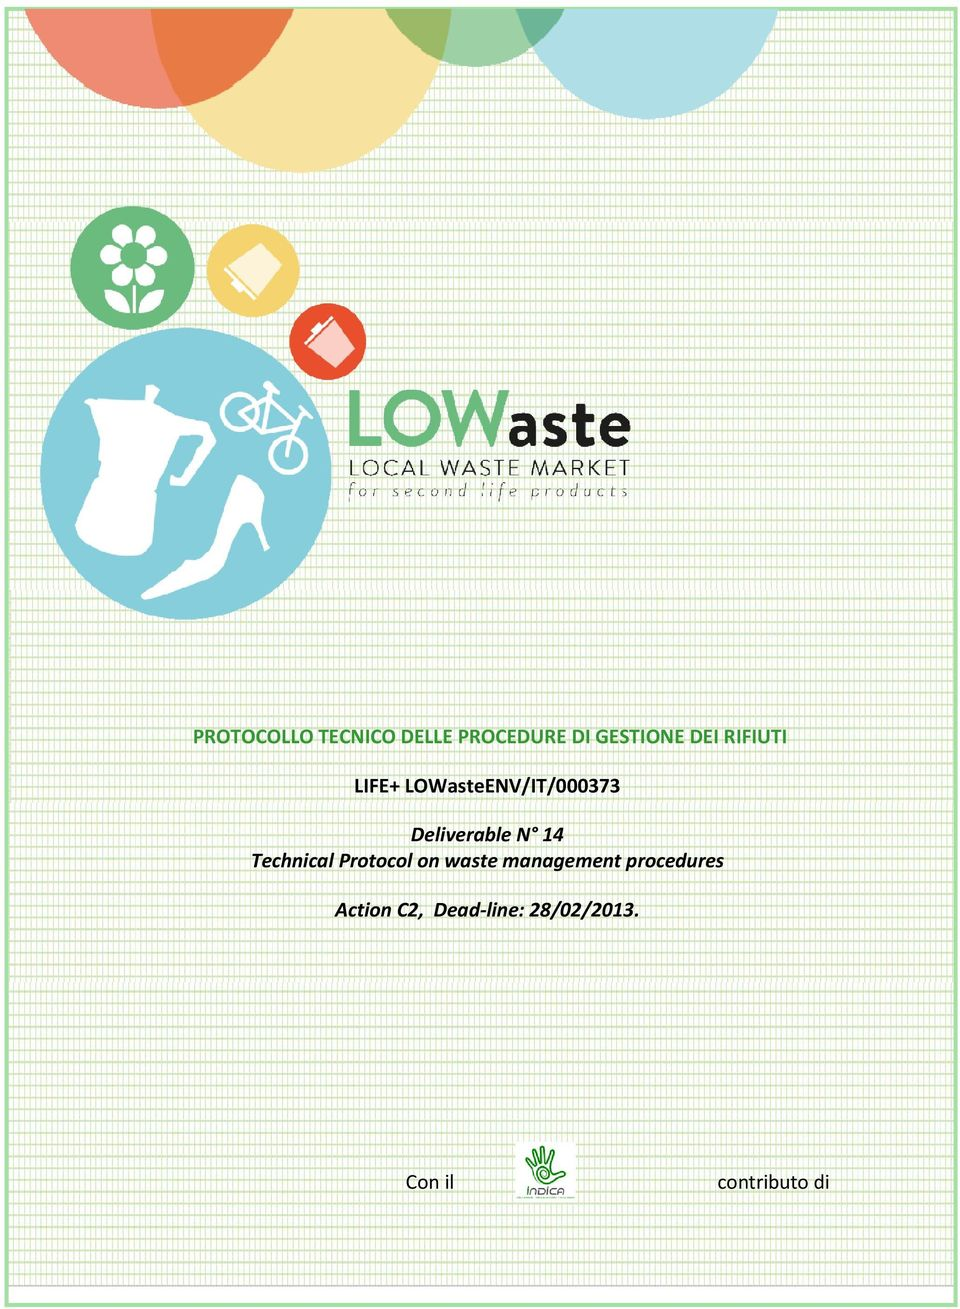 Technical Protocol on waste management procedures